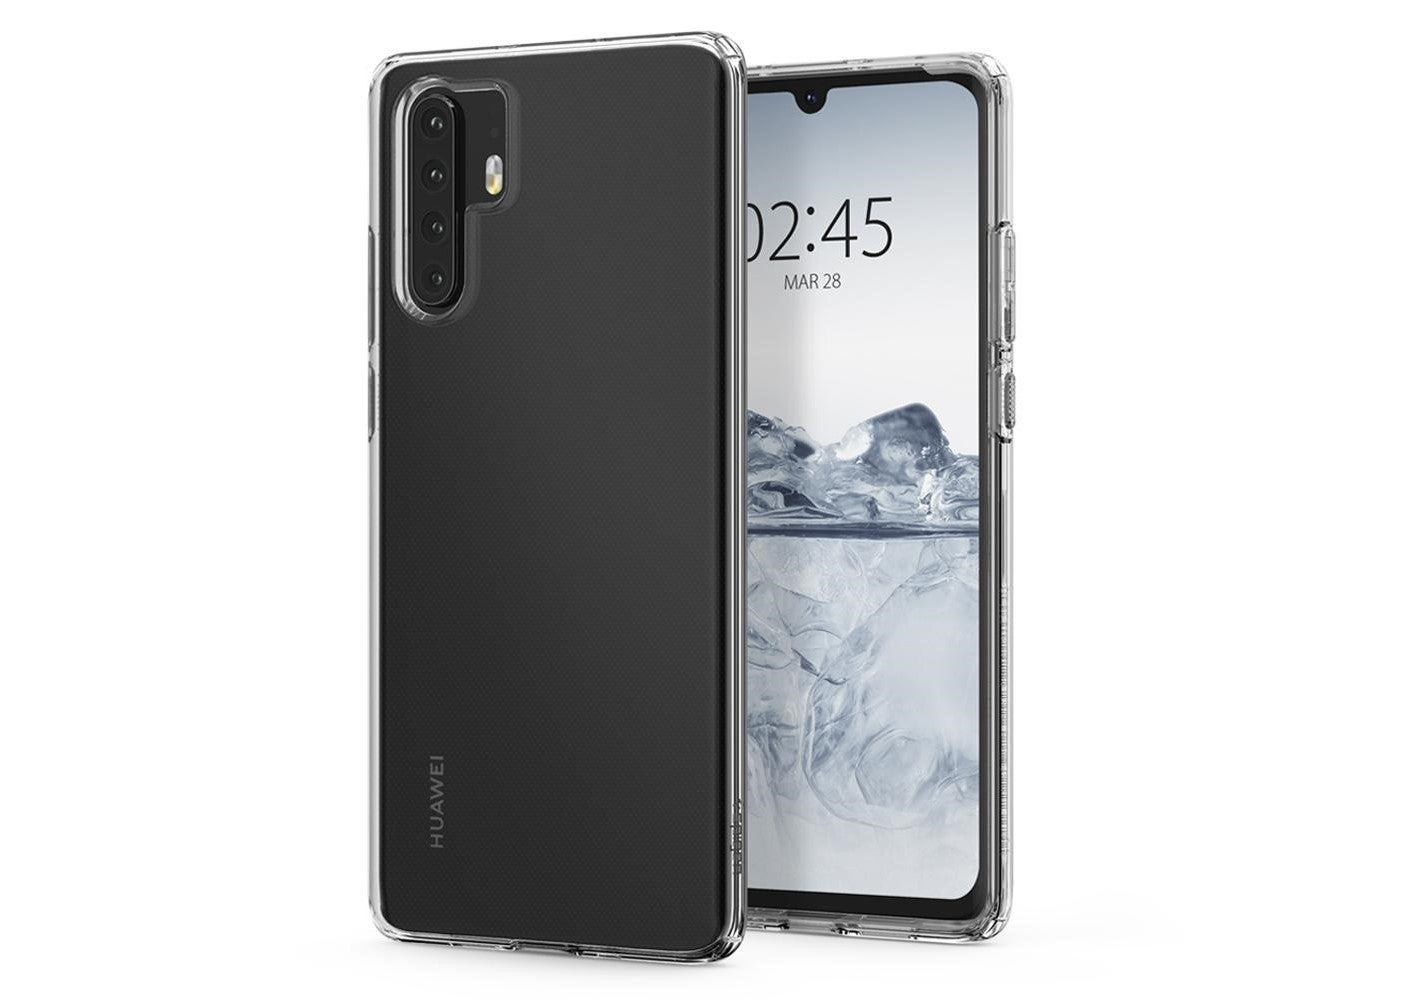 The Huawei P30 Family Will Launch In Paris On March 26